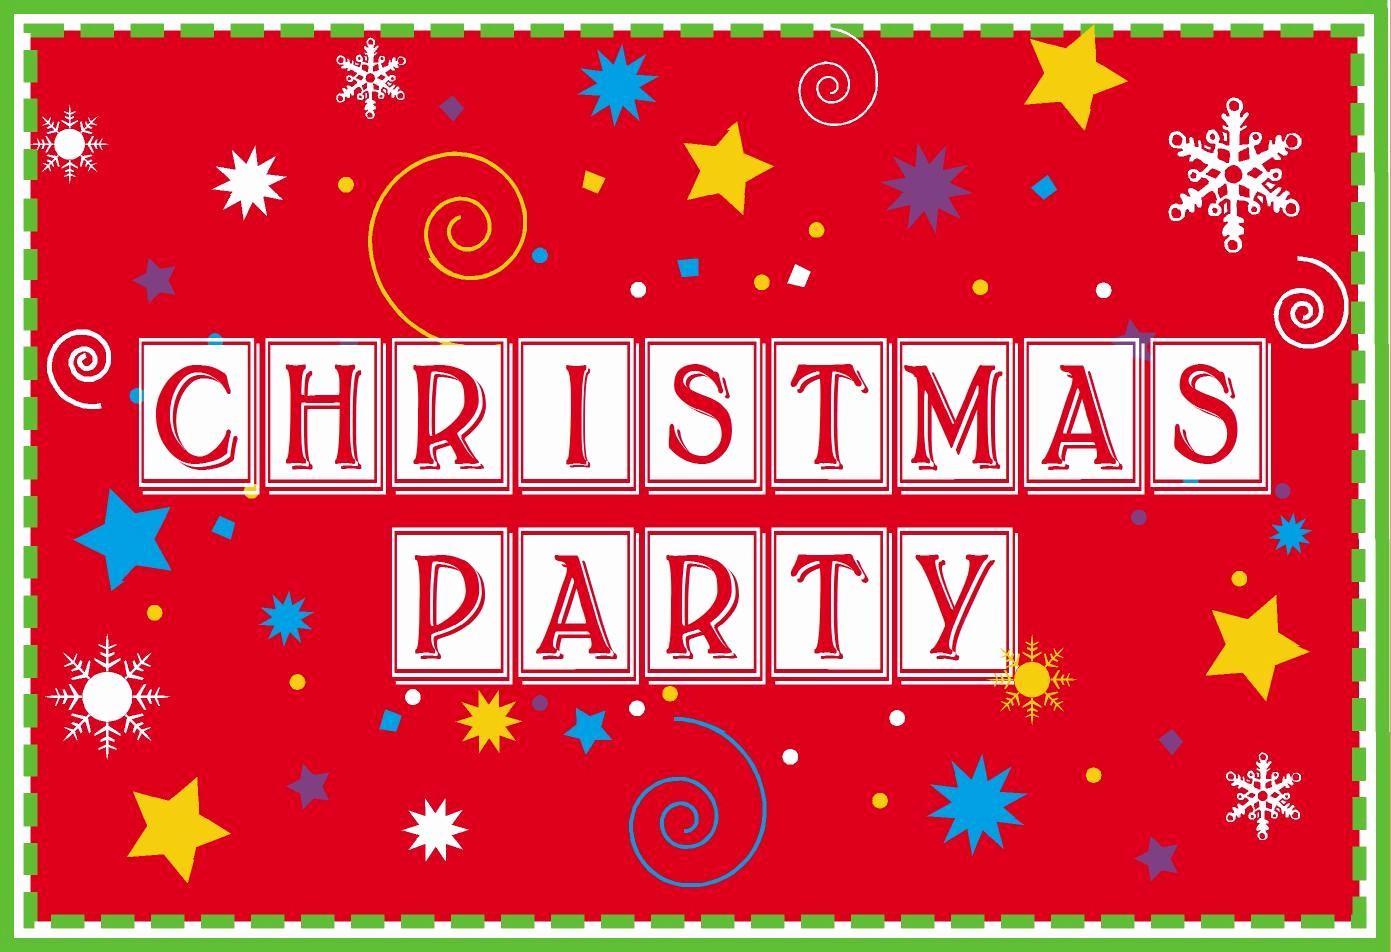 Office Christmas Party Free Download Best Of Christmas Wallpapers and and S Christmas